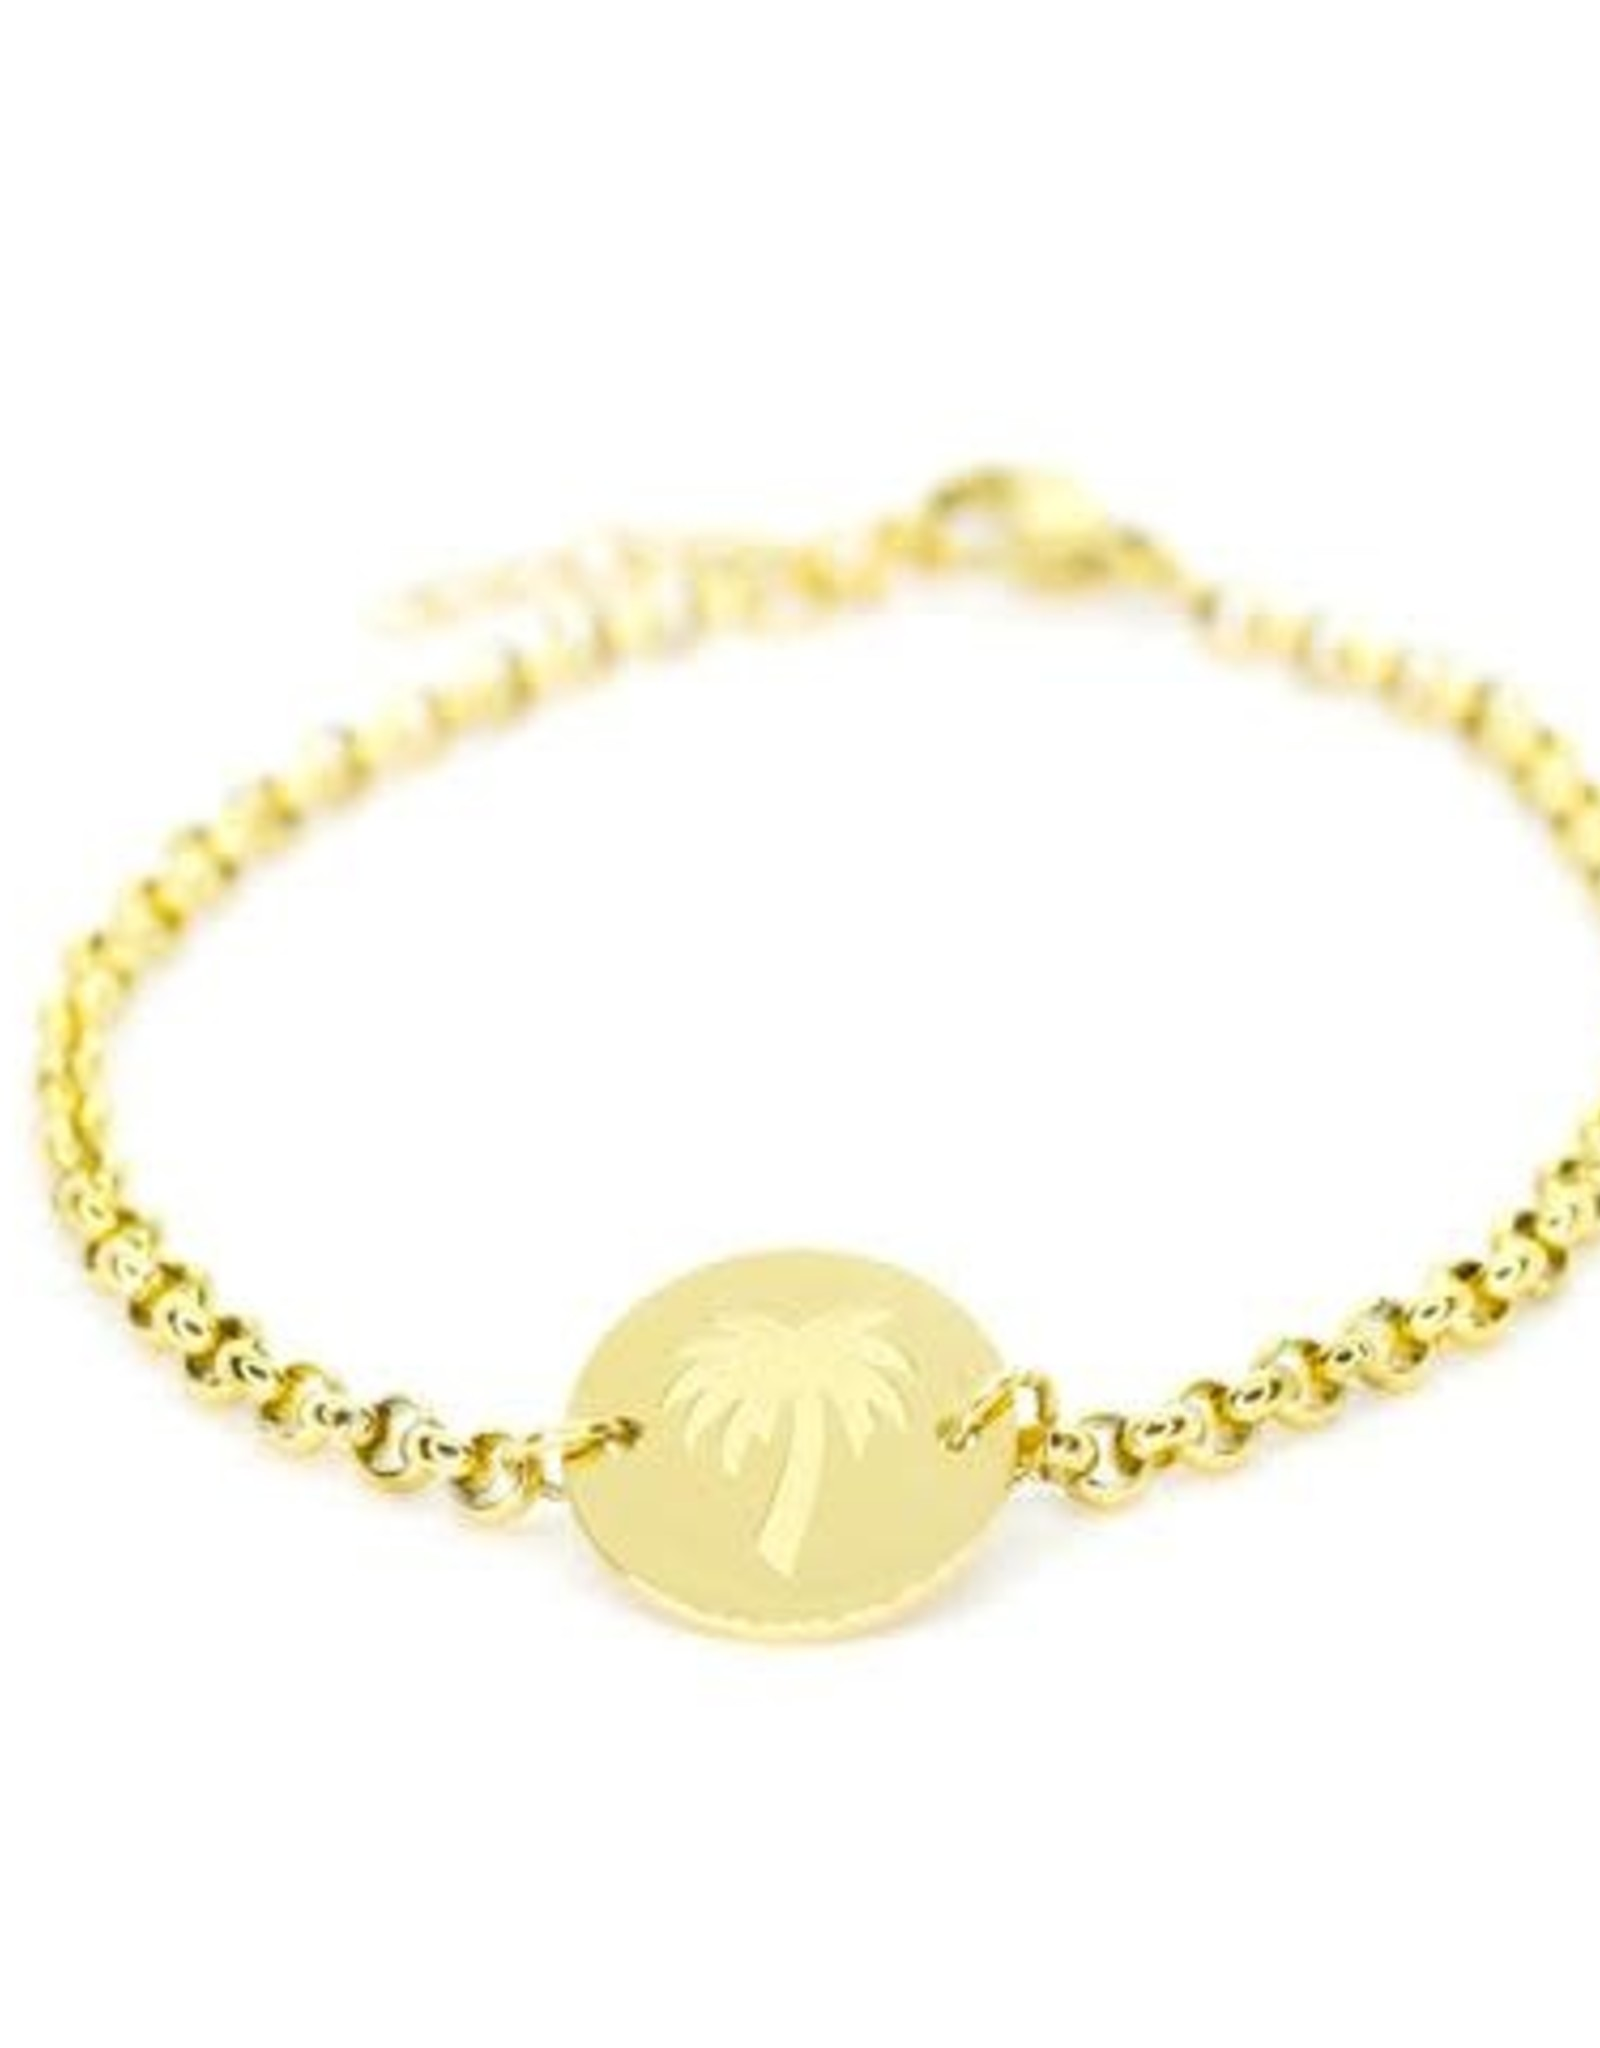 Salty Cali Lil Tokens Palm Bracelet - Silver Plated